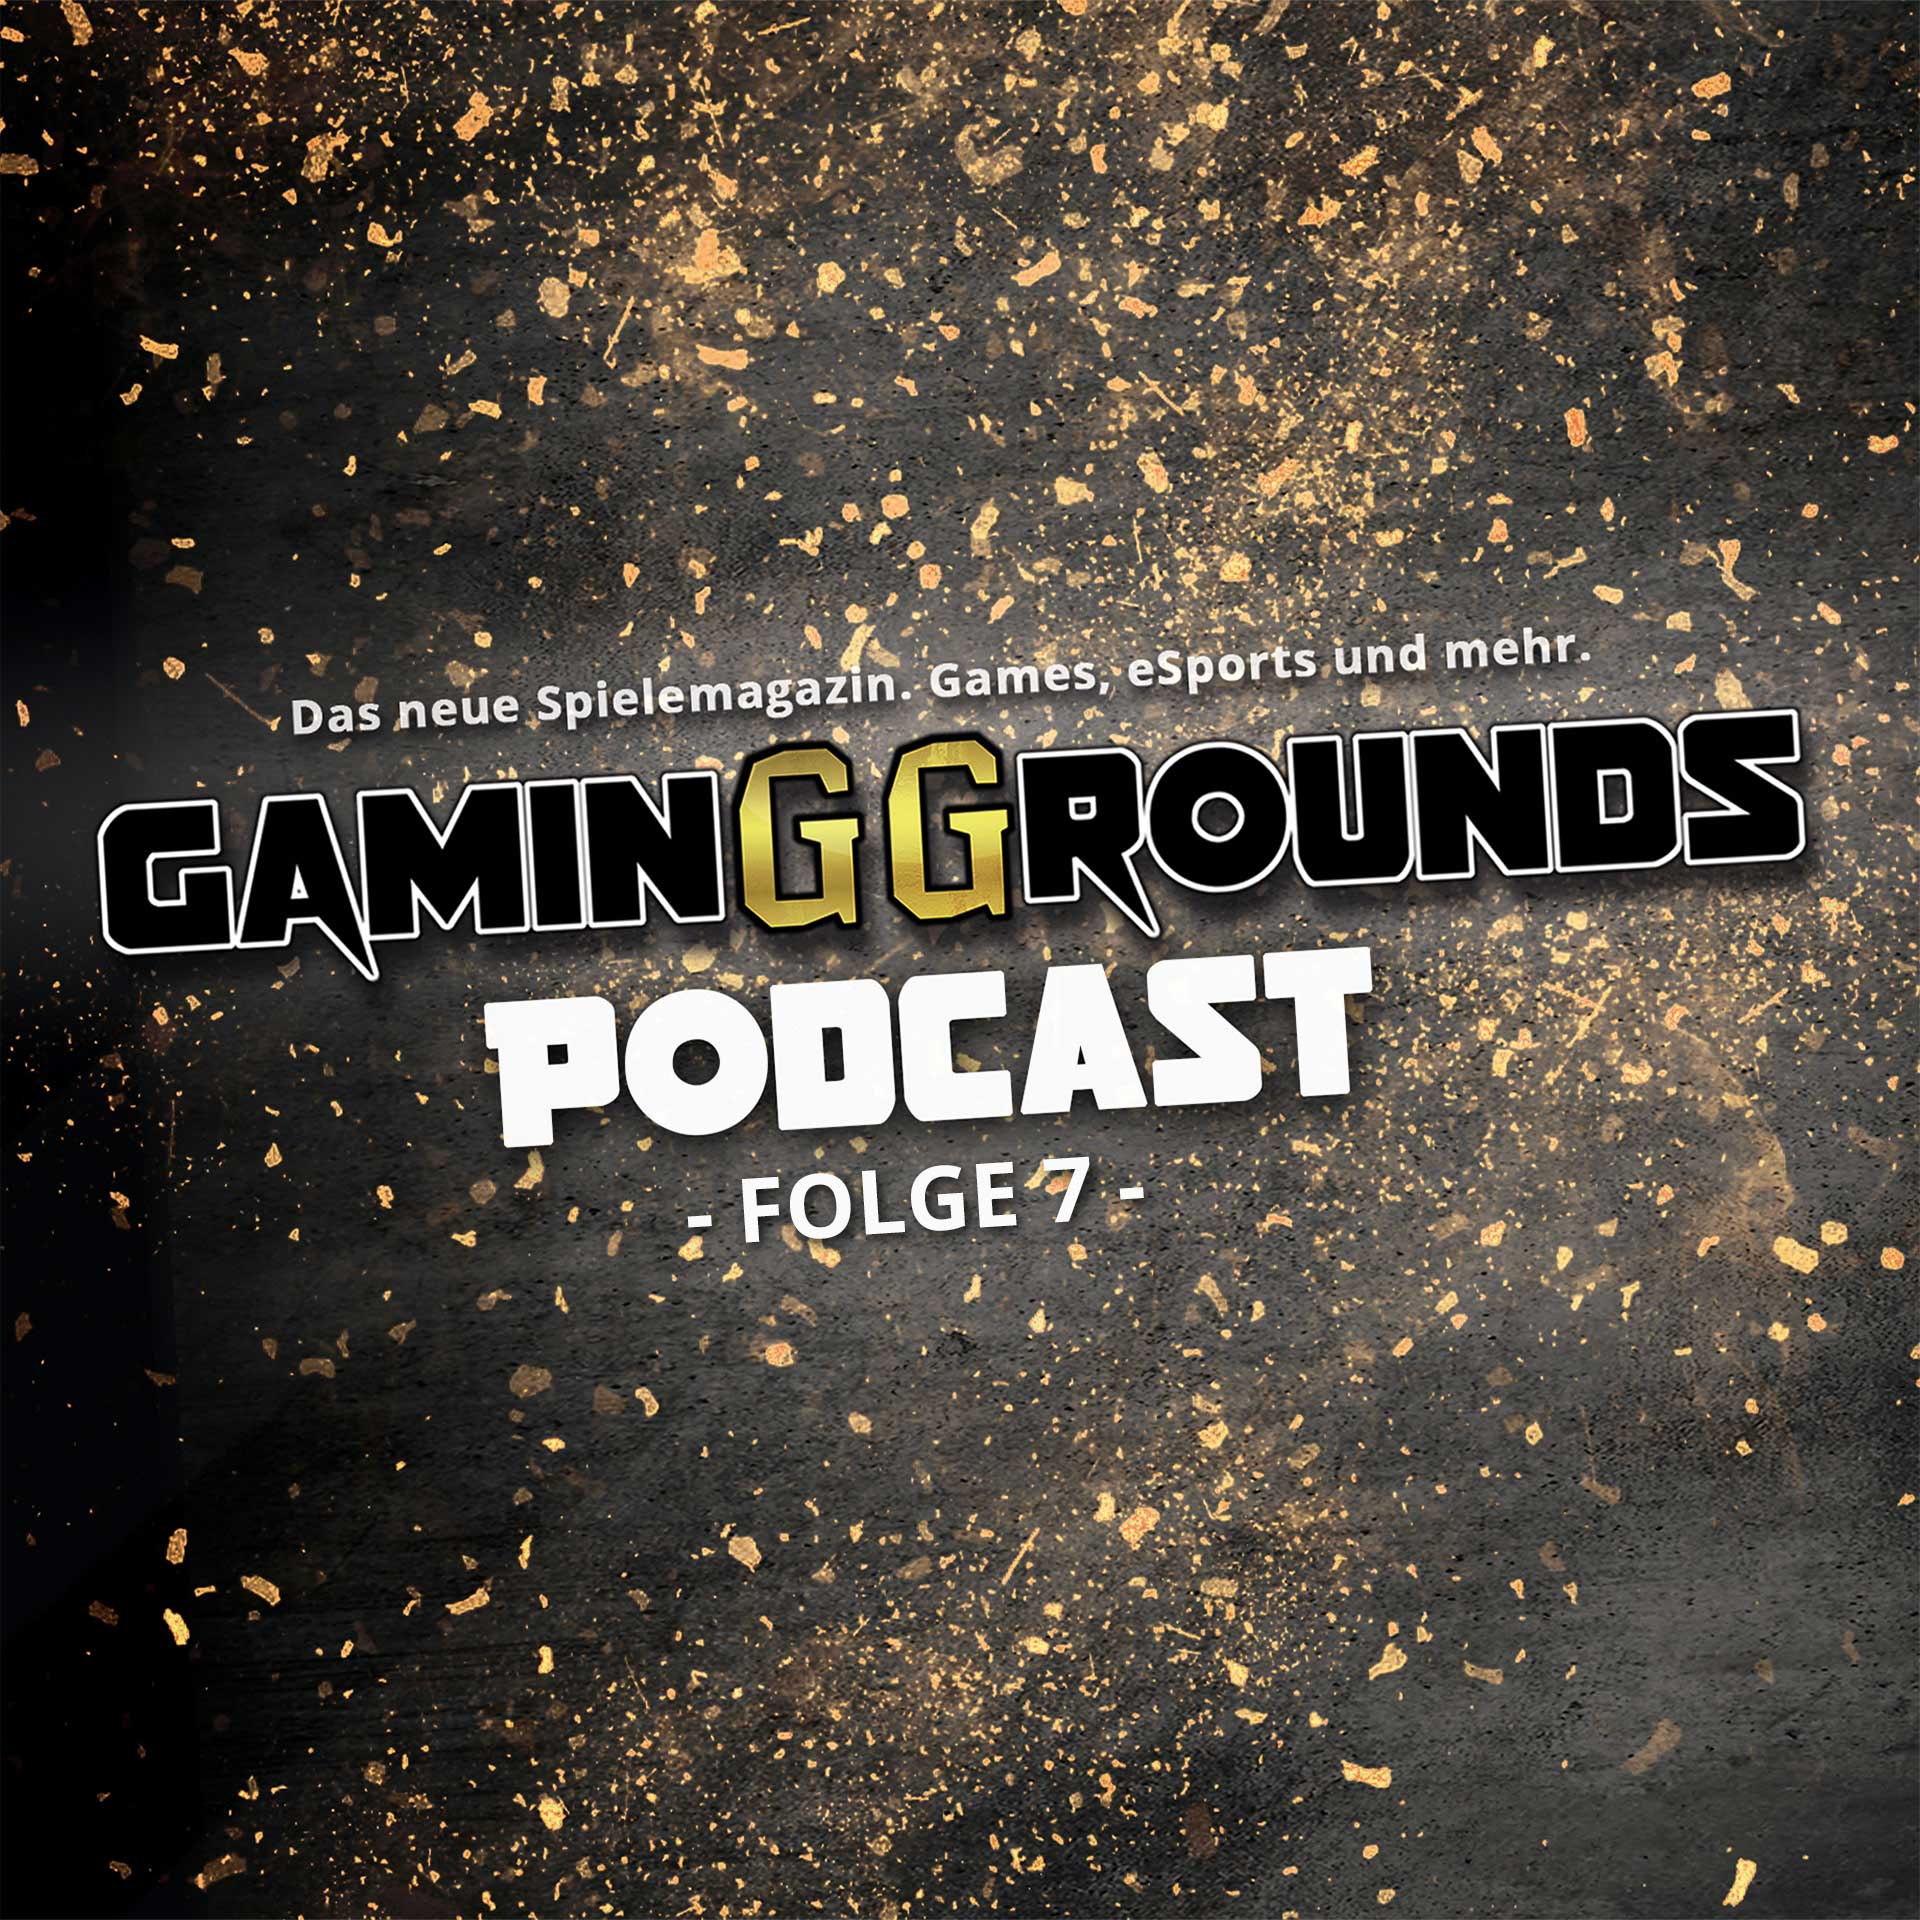 Gaming-Grounds.de Podcast